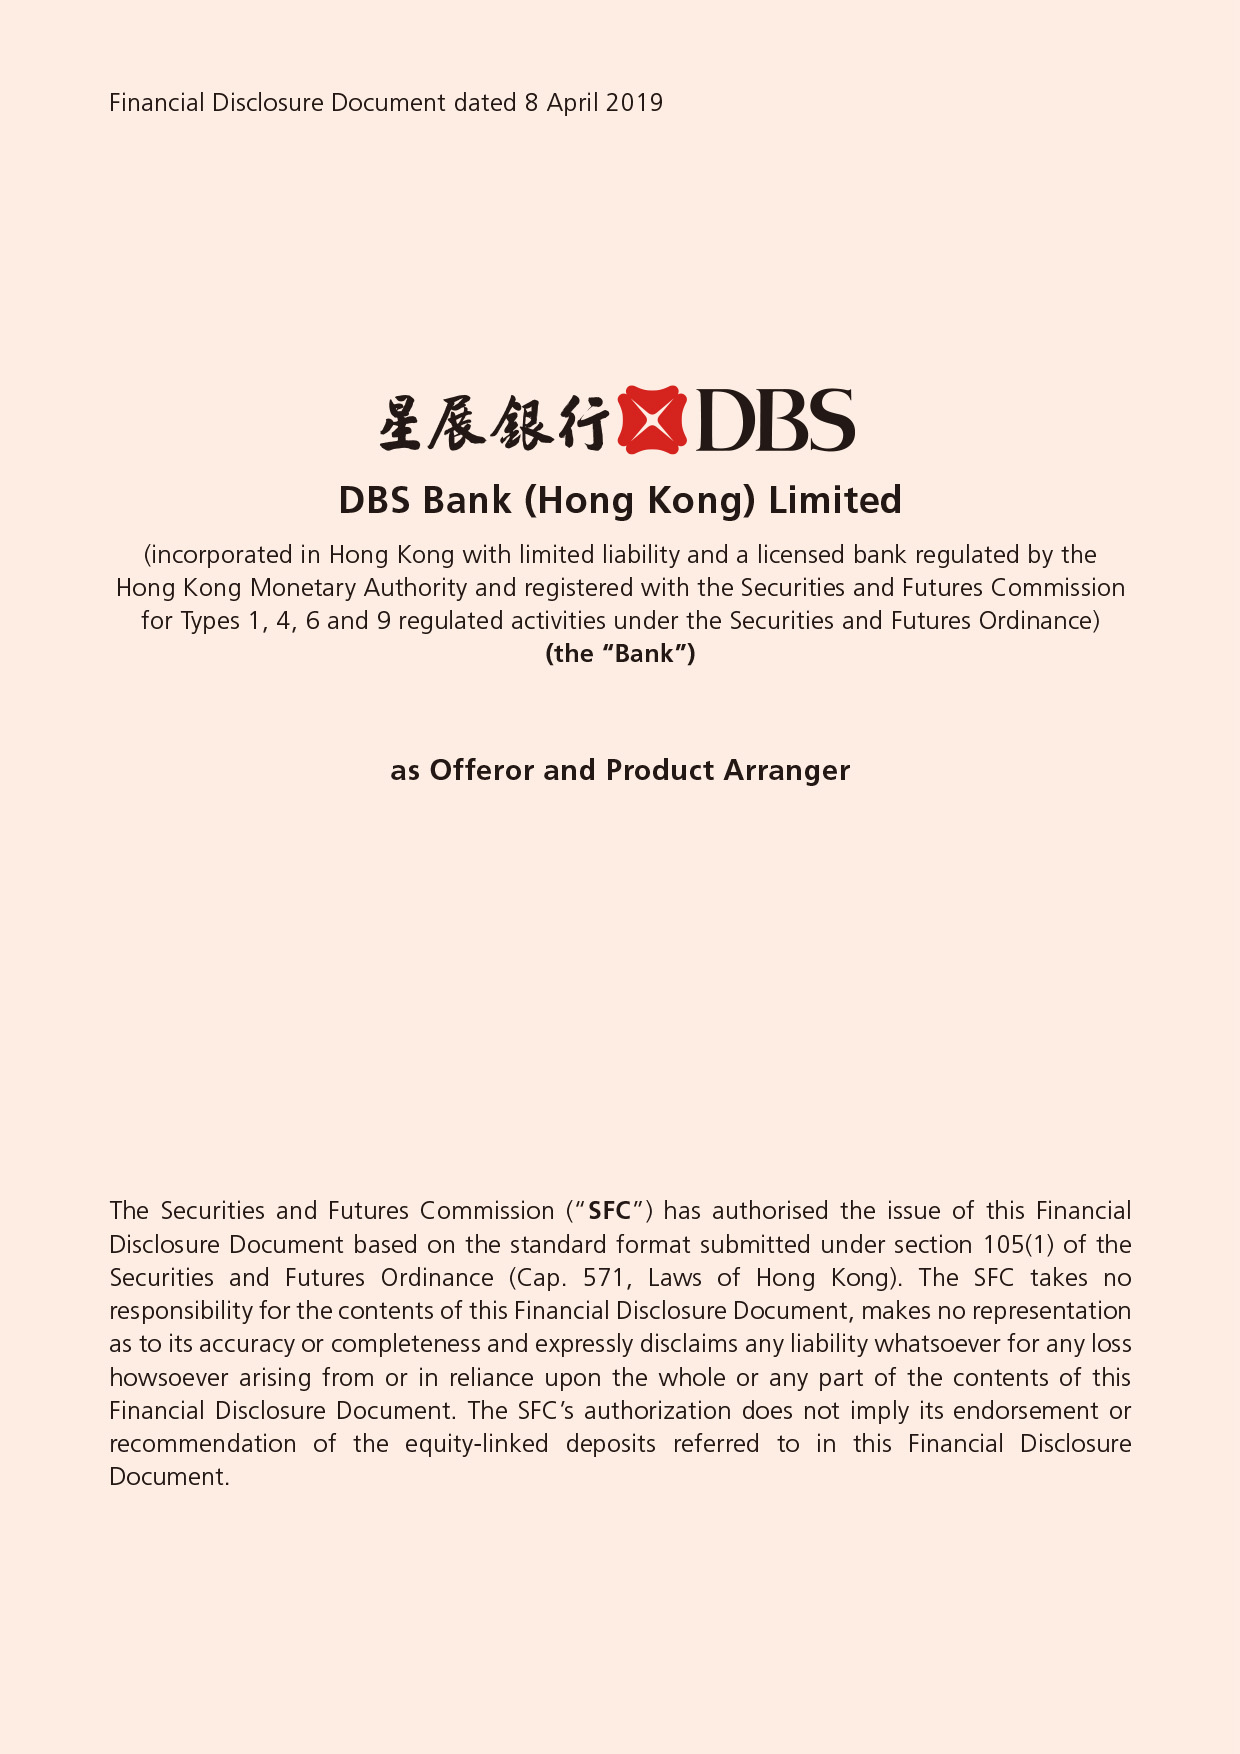 DBS Bank (Hong Kong) Limited